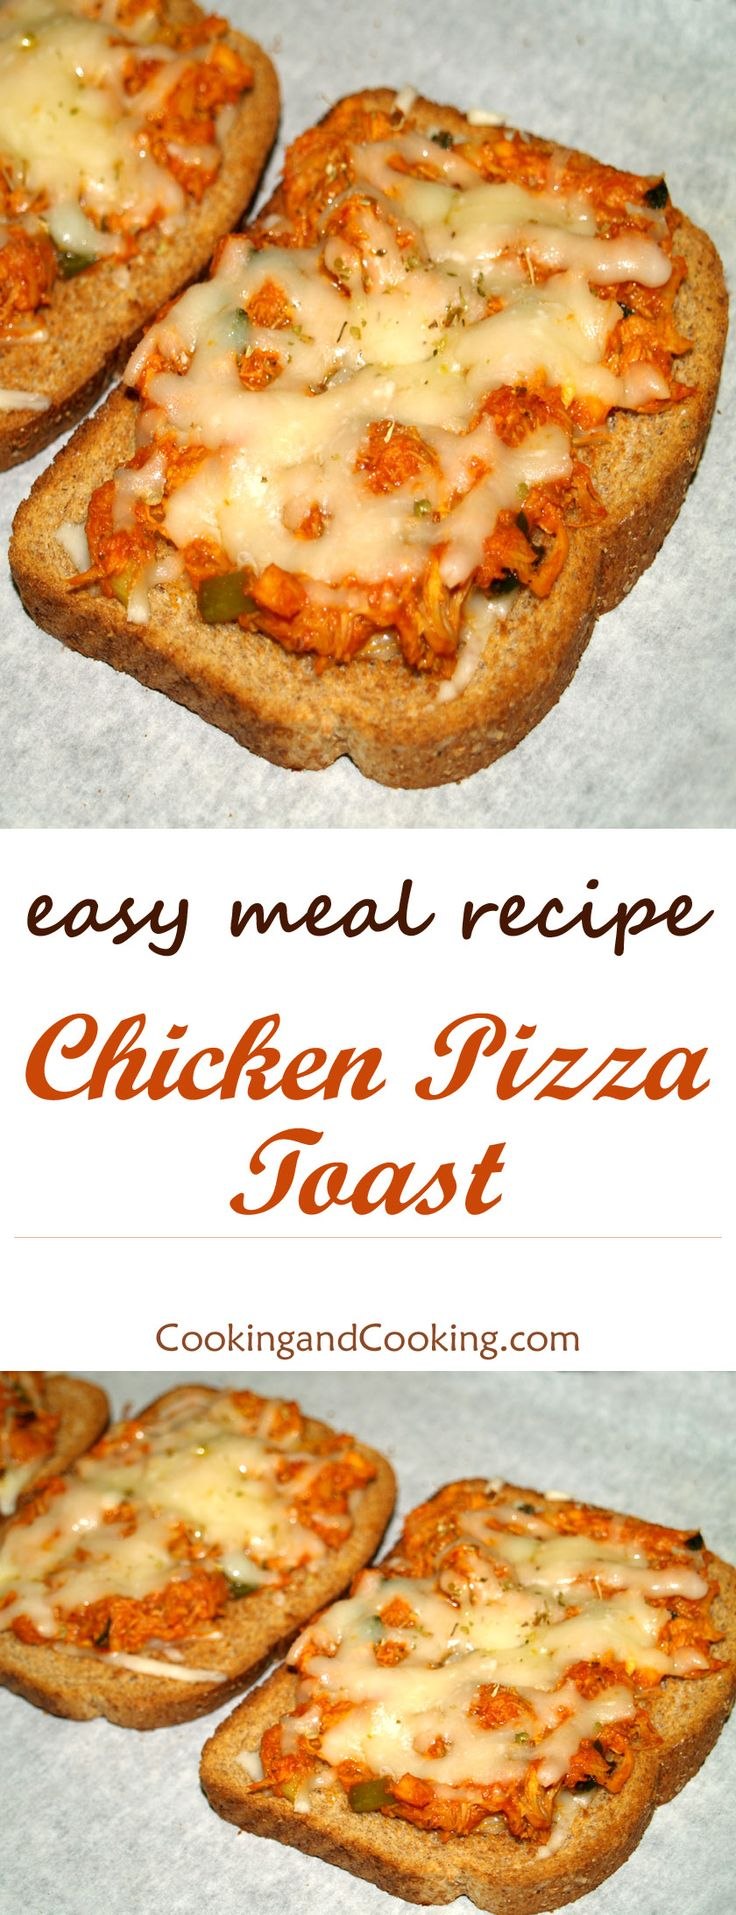 In this Chicken Pizza Toast recipe, I used toasted bread slices as a base and topped with a layer of chicken mixture and Mozzarella cheese.